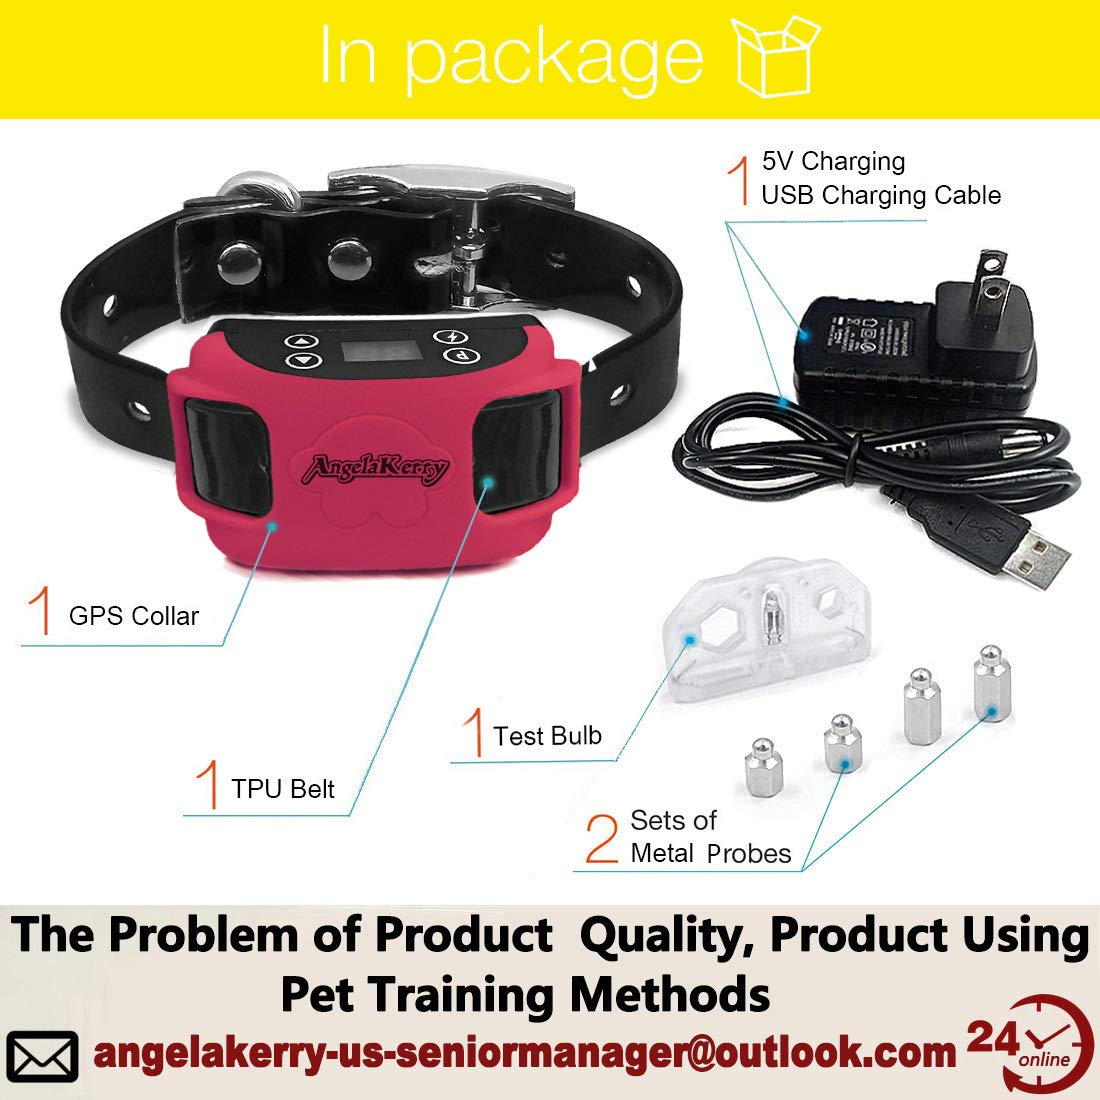 AngelaKerry Wireless Dog Fence System with GPS, Outdoor Pet Containment System Rechargeable Waterproof Collar 850YD Remote for 15lbs-120lbs Dogs Rose Red, 1pc GPS Receiver by 1 Dog